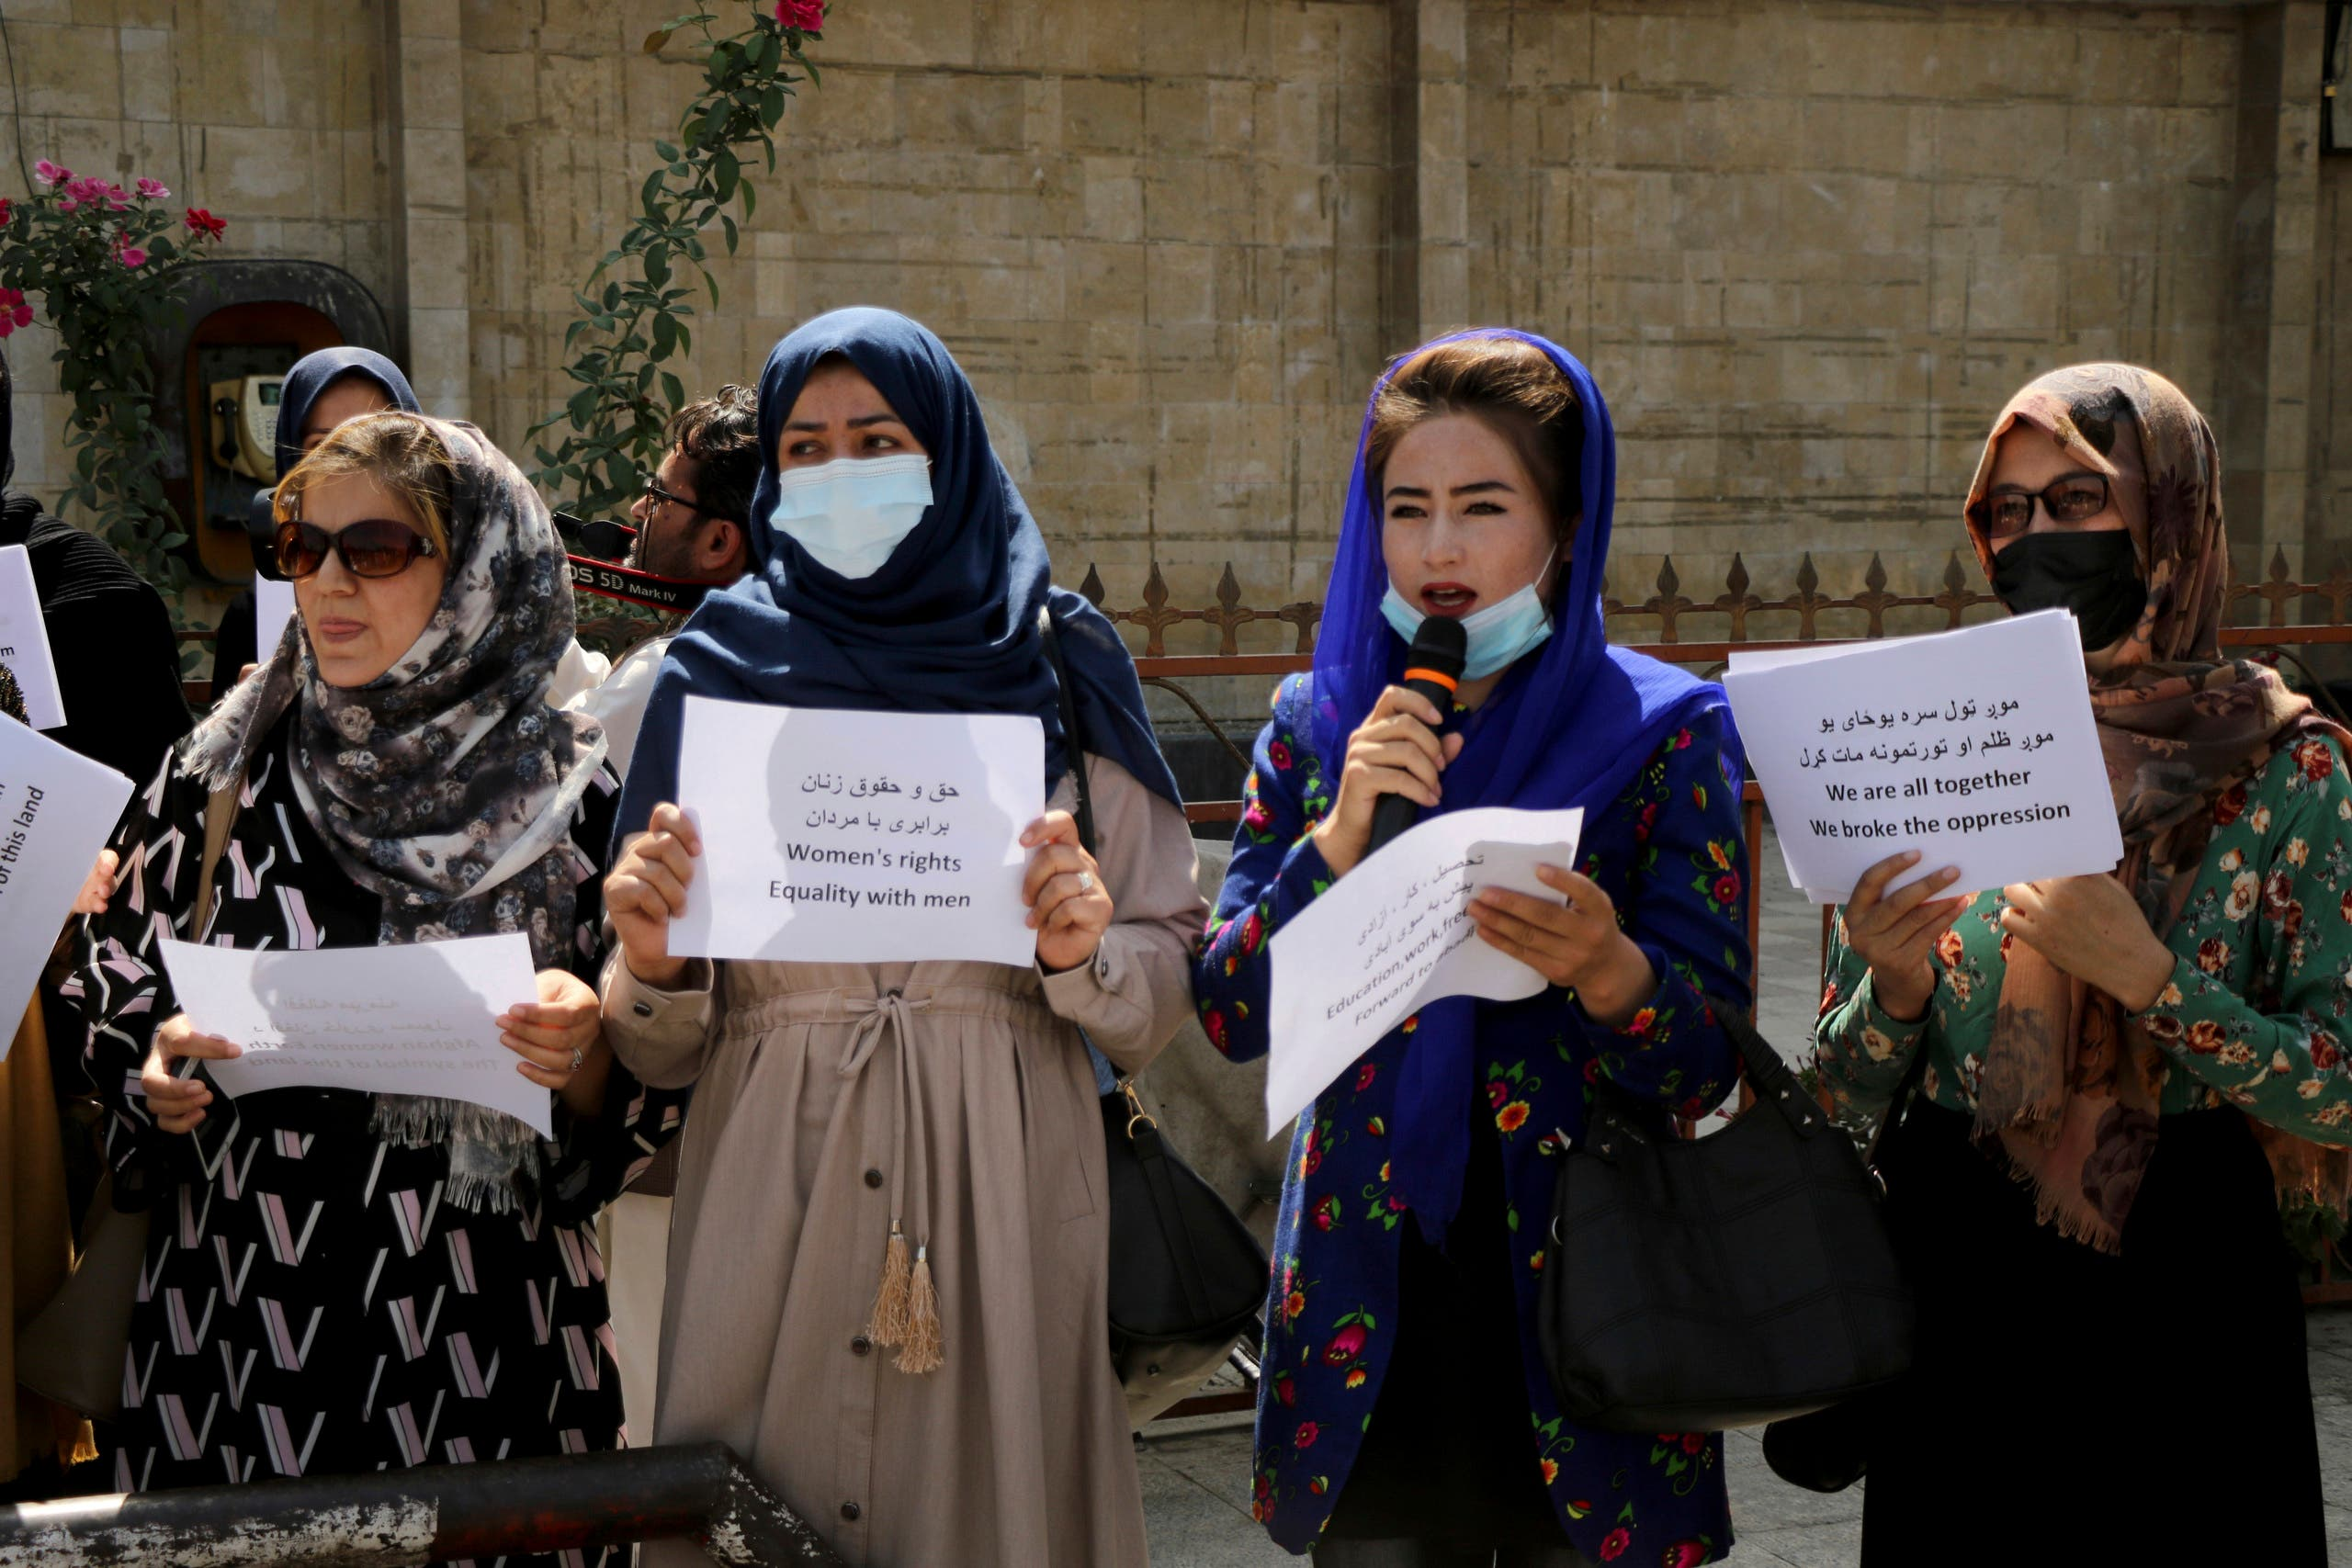 Women gather to demand their rights under the Taliban rule during a protest in Kabul, Afghanistan, Friday, Sept. 3, 2021. As the world watches intently for clues on how the Taliban will govern, their treatment of the media will be a key indicator, along with their policies toward women. When they ruled Afghanistan between 1996-2001, they enforced a harsh interpretation of Islam, barring girls and women from schools and public life, and brutally suppressing dissent. (File photo: AP)